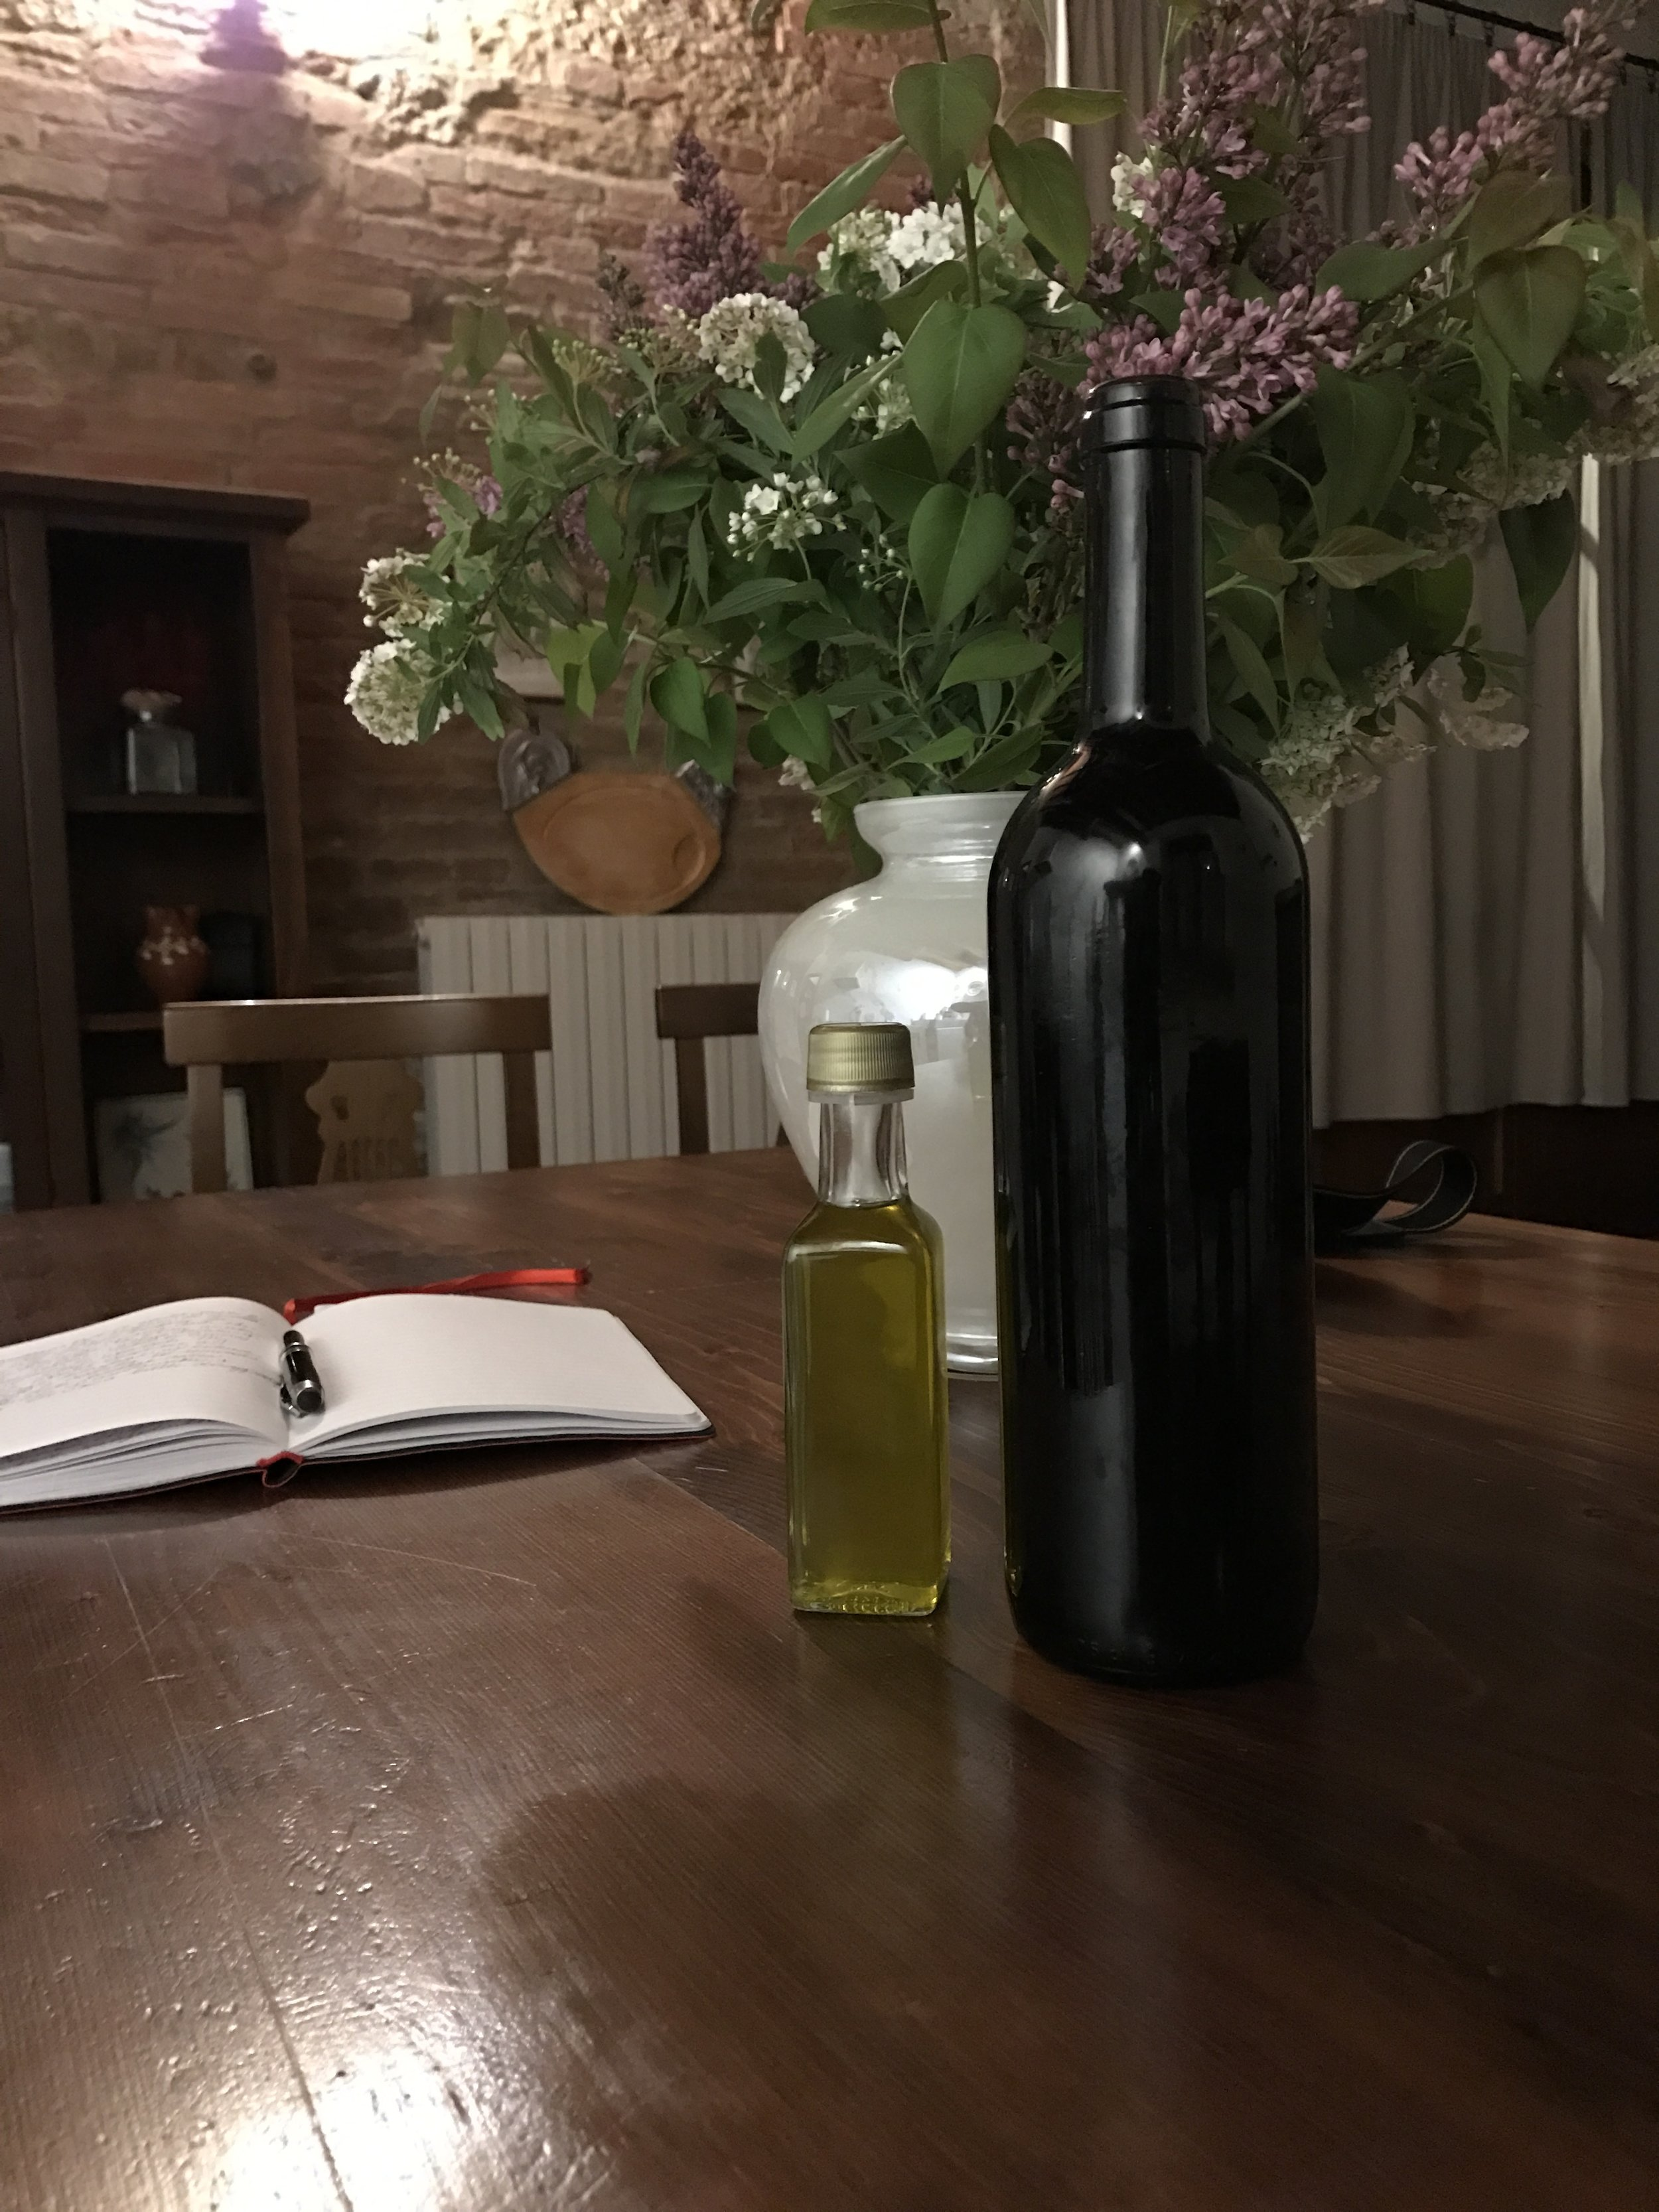 Travel journal, Terra Rossa olive oil and a bottle of home-made Sangiovese